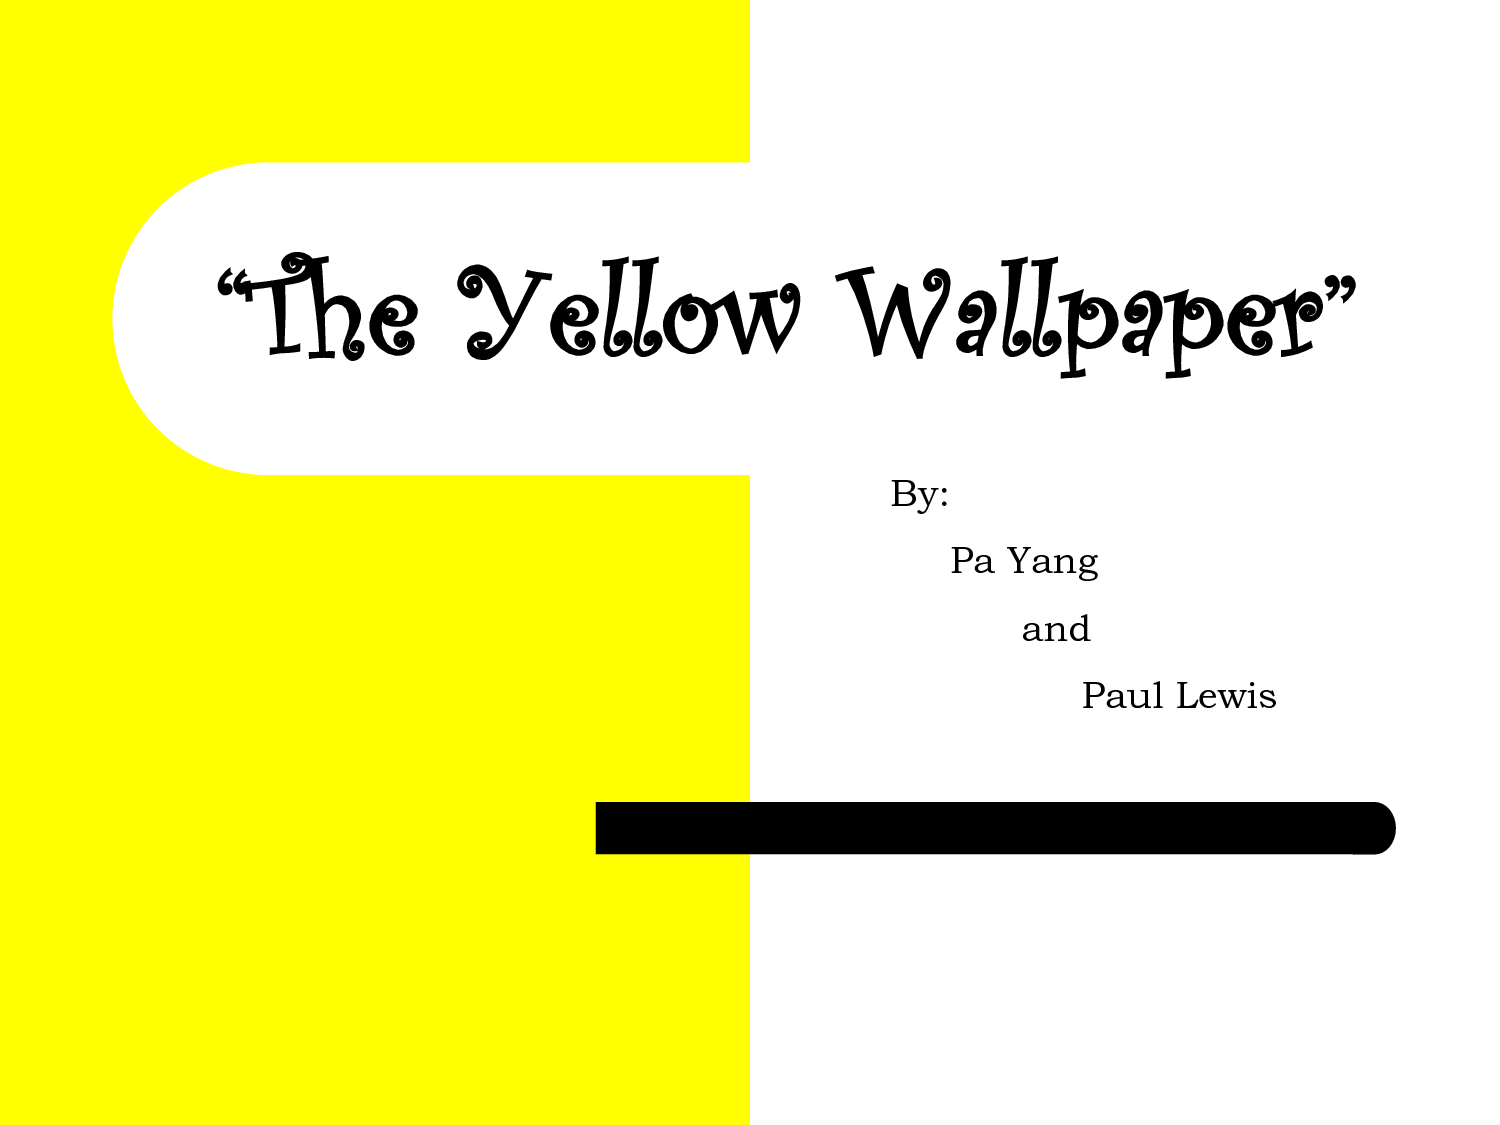 The Yellow Wallpaper Document Sample The Yellow Wallpaper 1500x1125